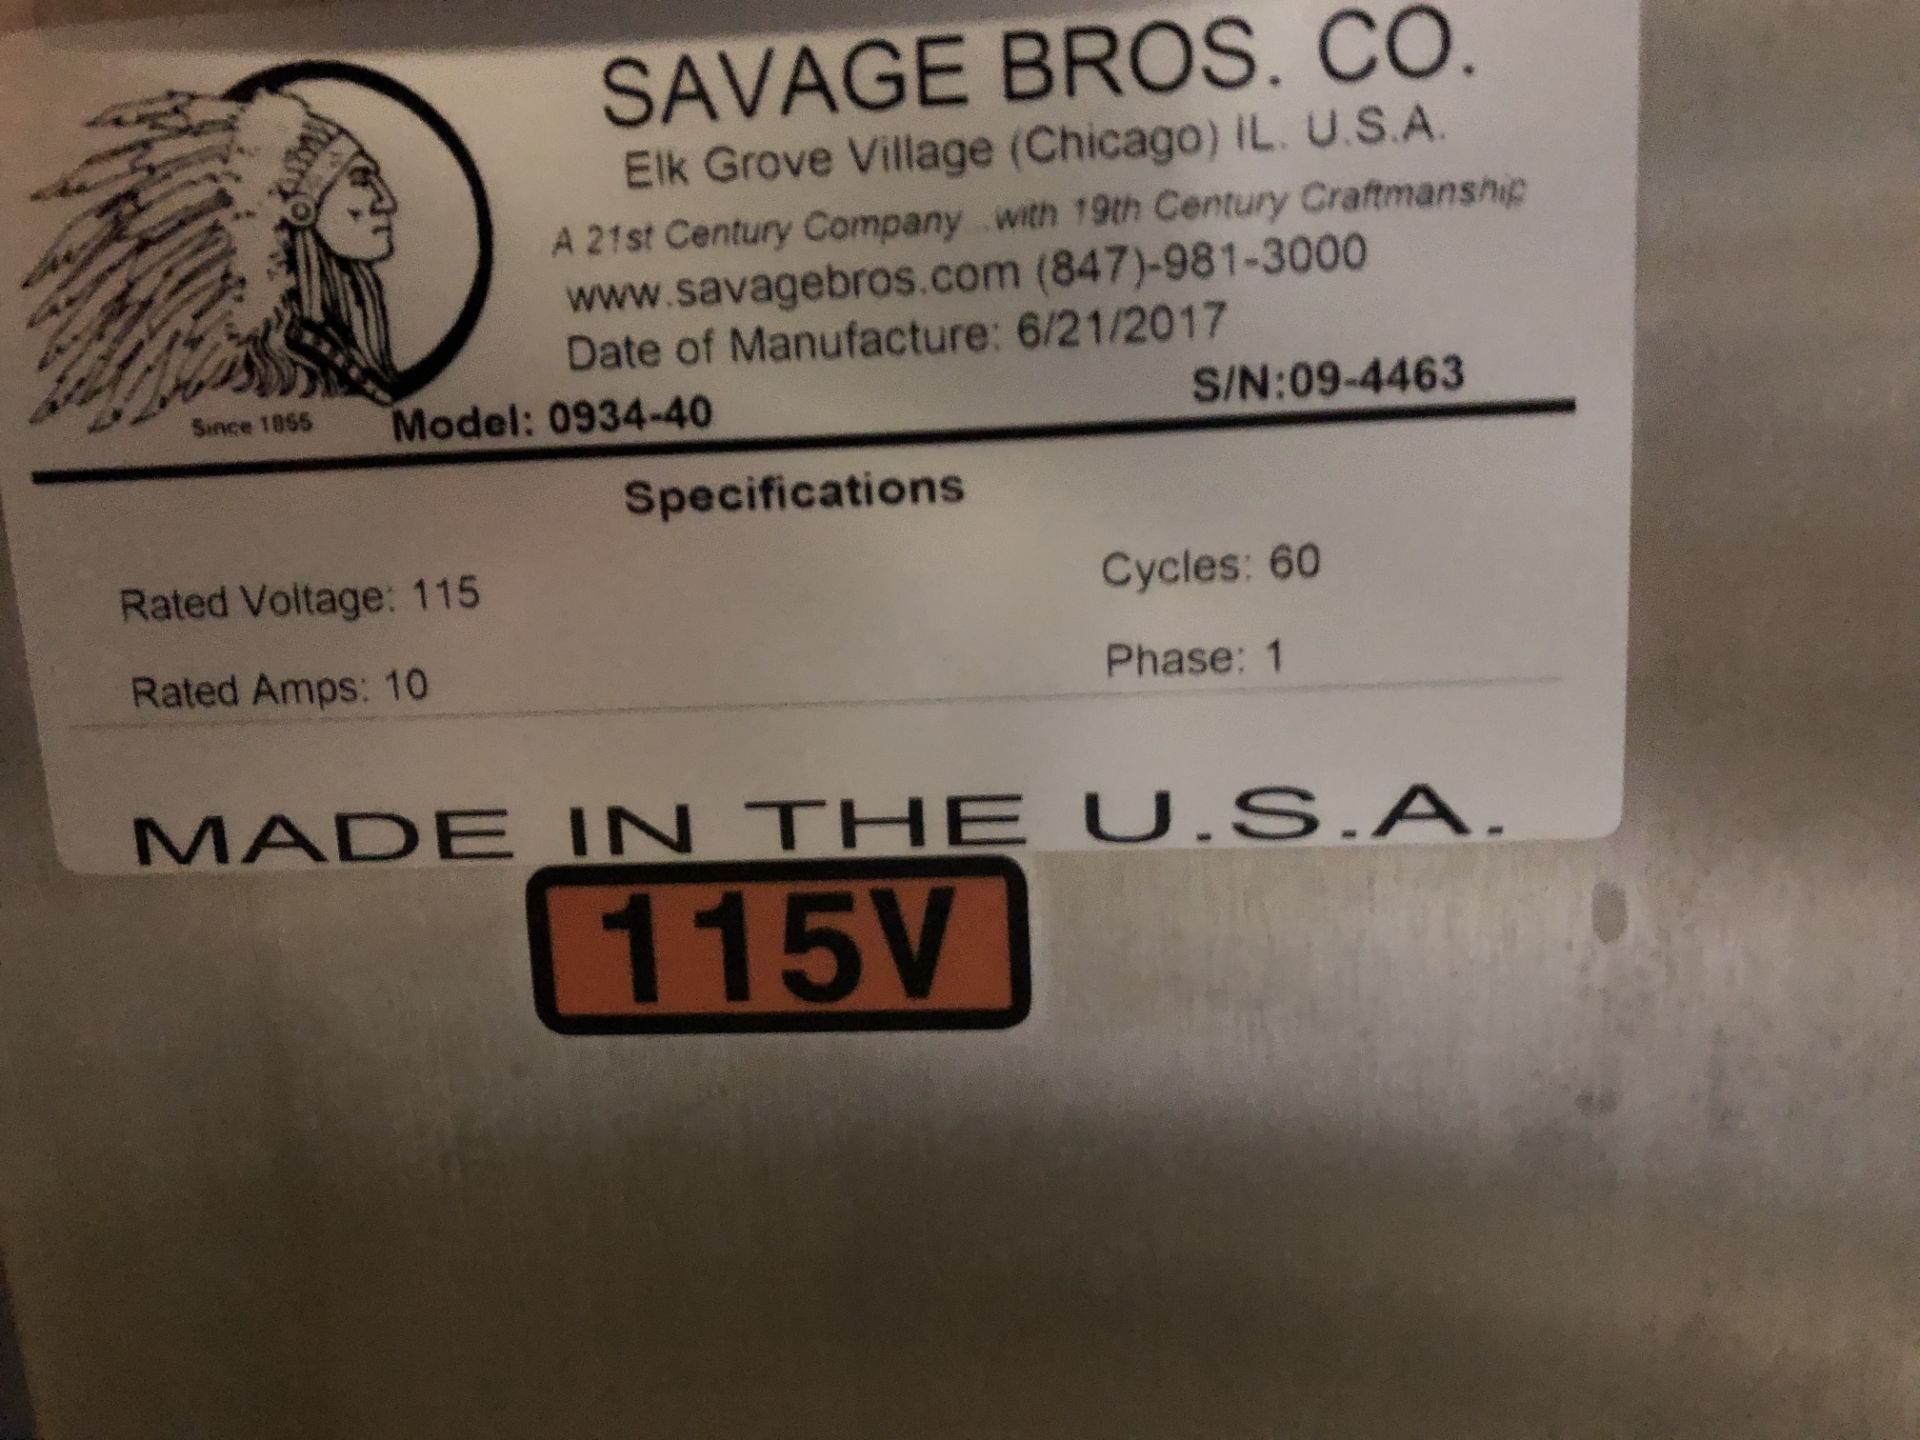 Lot 30 - Savage 50-lb Stainless Steel Chocolate Melter, model 0934-40, jacketed and agitated, electrically